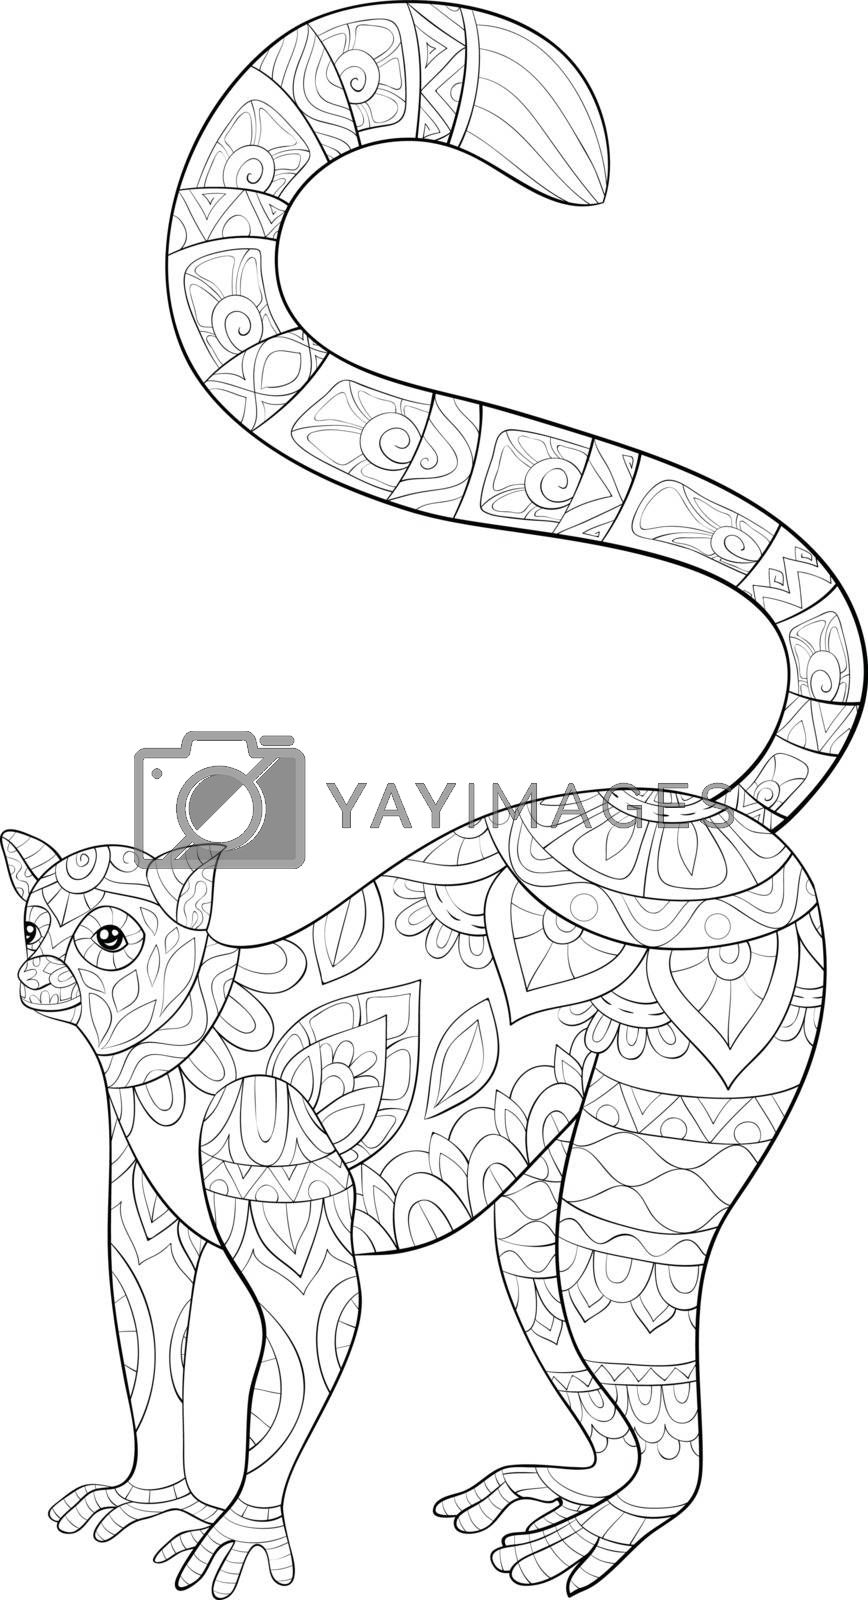 A cute lemur with ornaments  image for relaxing activity.A coloring book,page for adults.Zen art style illustration for print.Poster design.